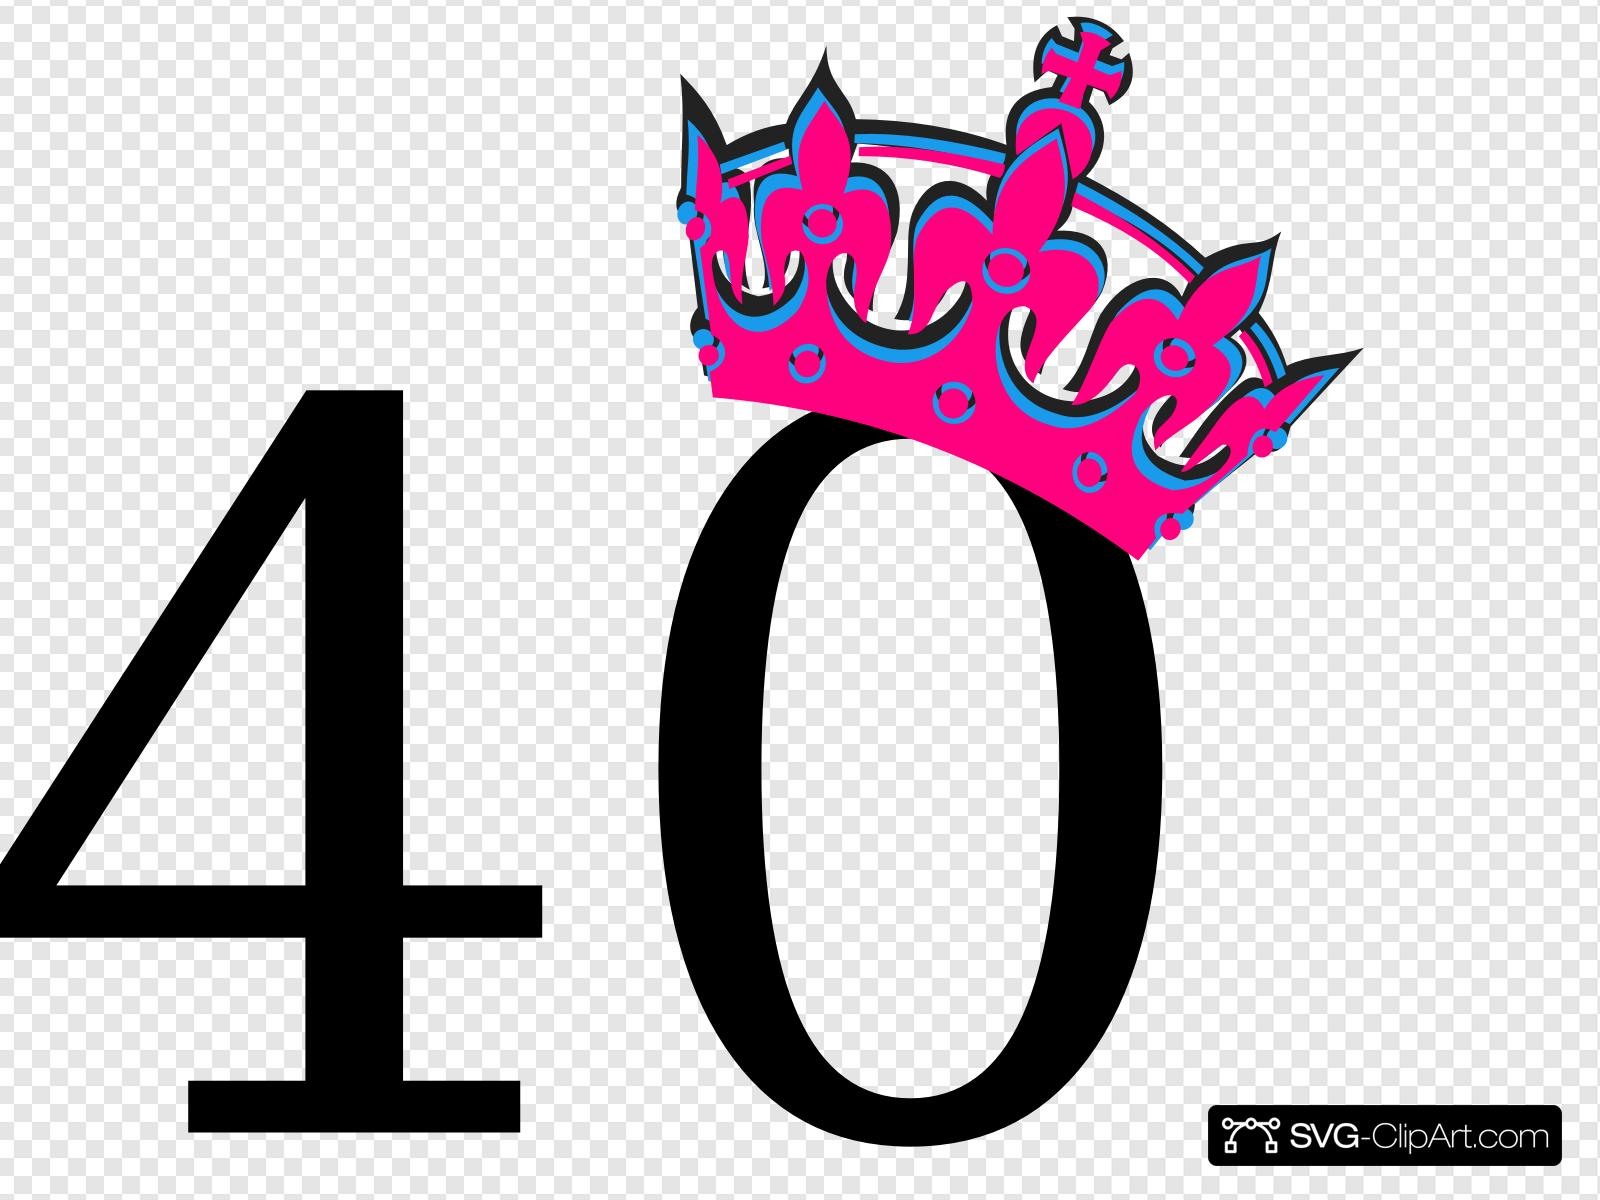 Pink Tilted Tiara And Number 40 Clip art, Icon and SVG.